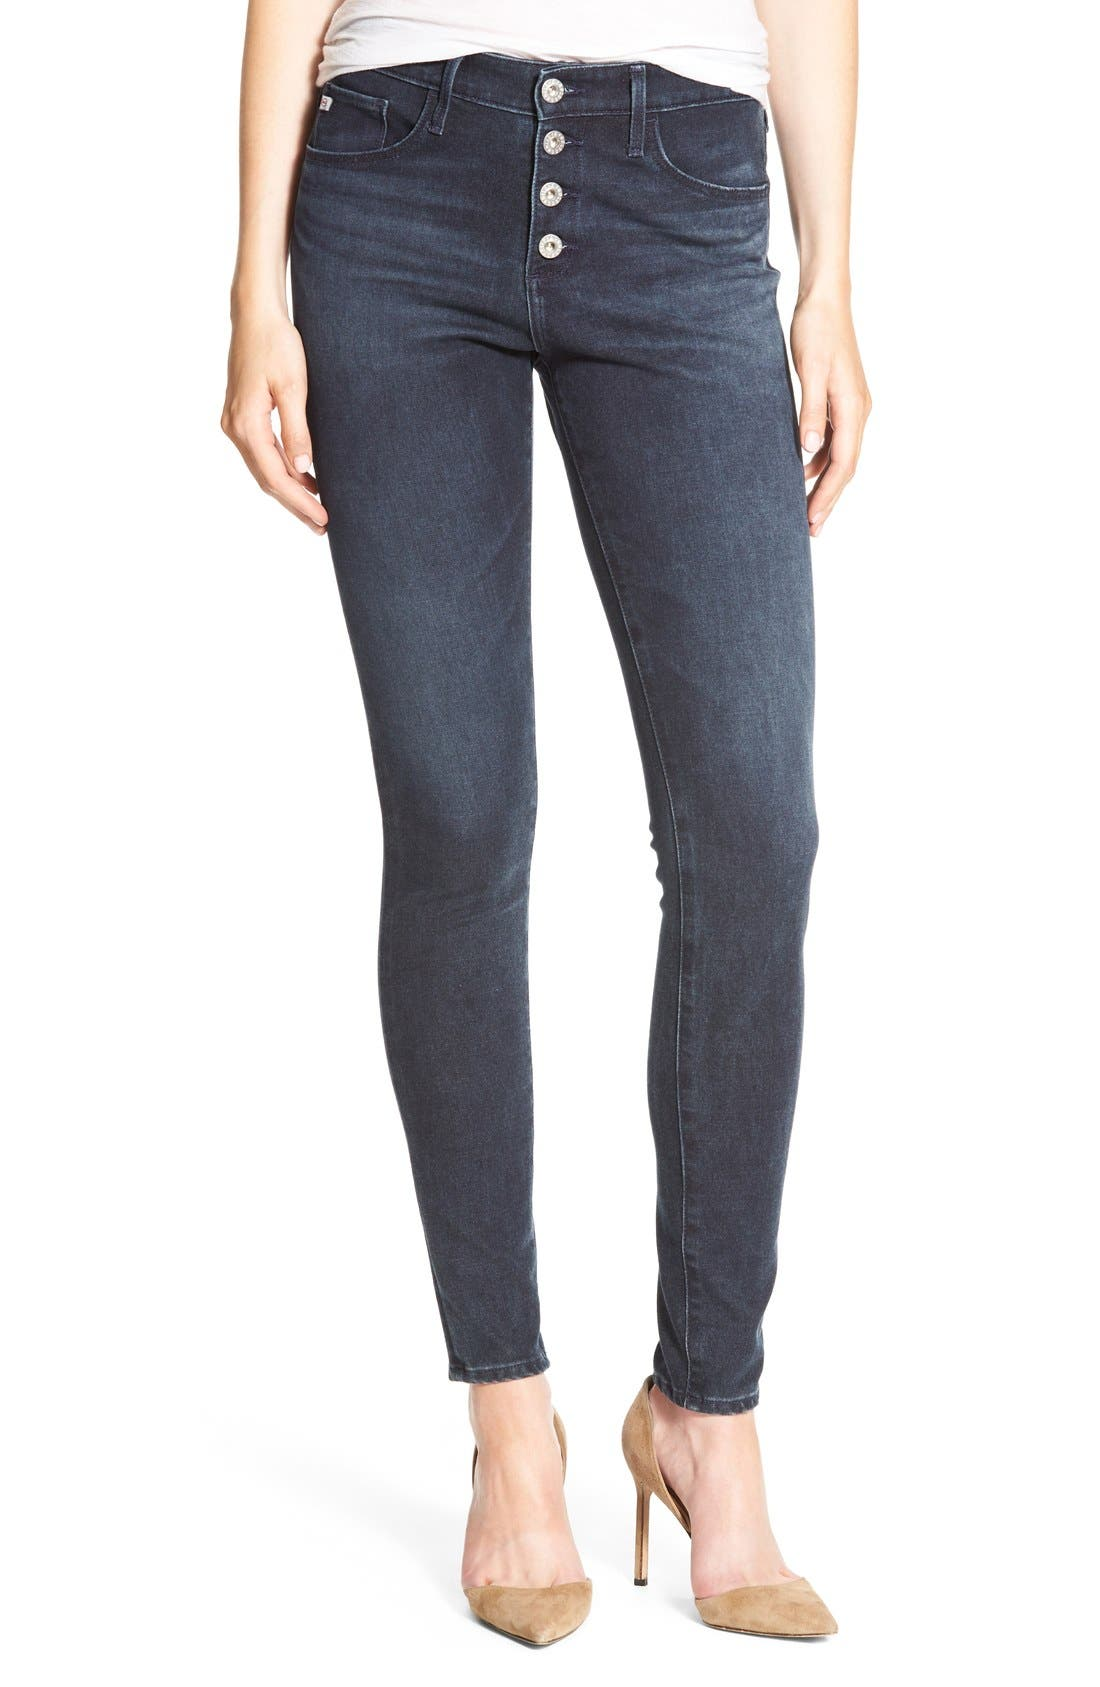 Alternate Image 1 Selected - AG The Farrah High Waist Skinny Jeans (Waterline)